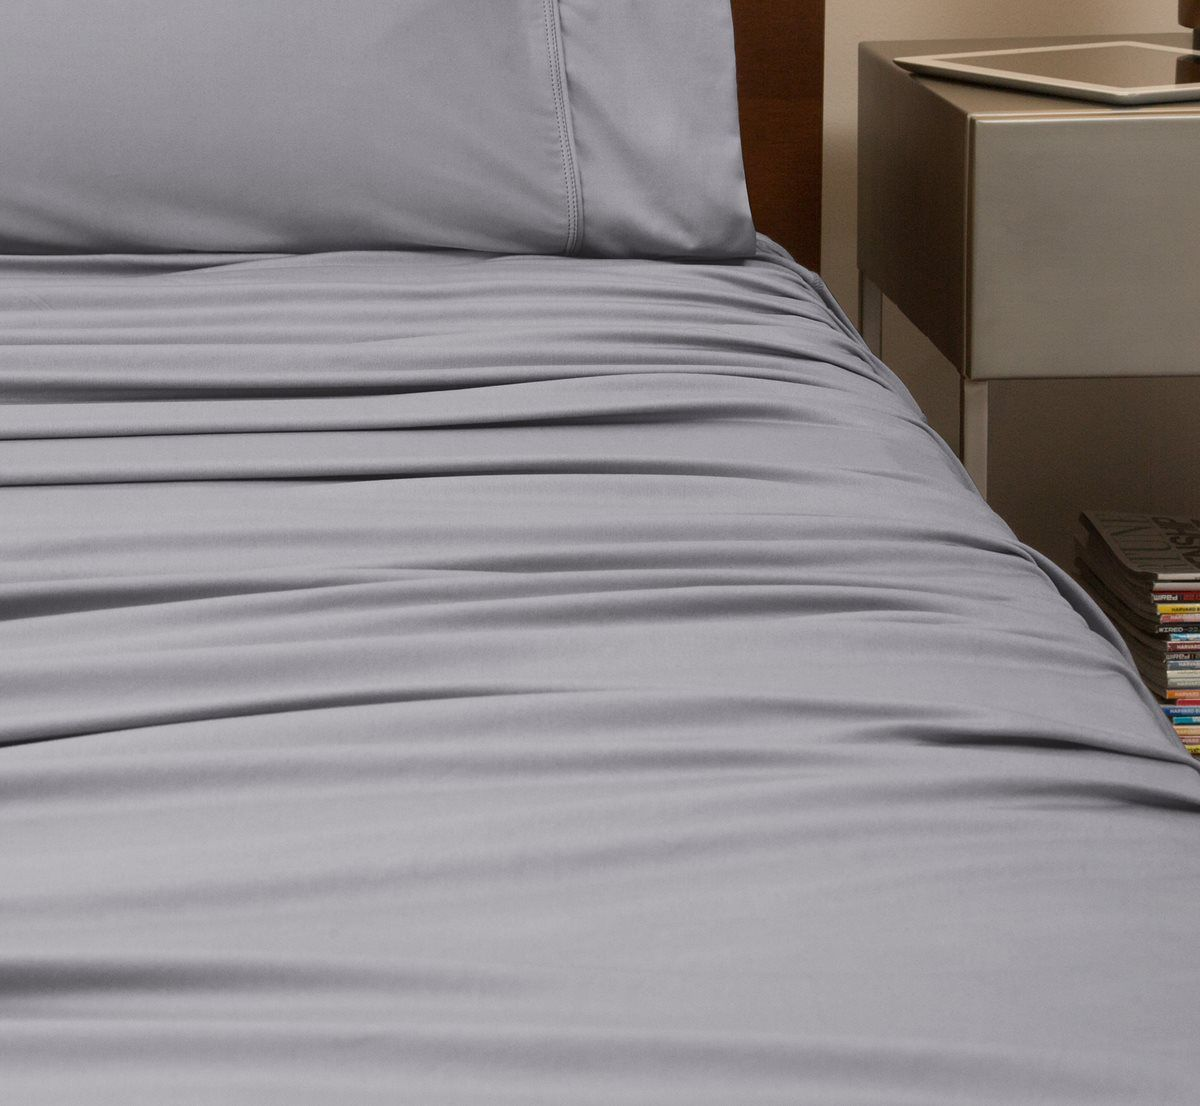 Softer Silkier And Cooler Than Traditional Cotton Bed Sheets